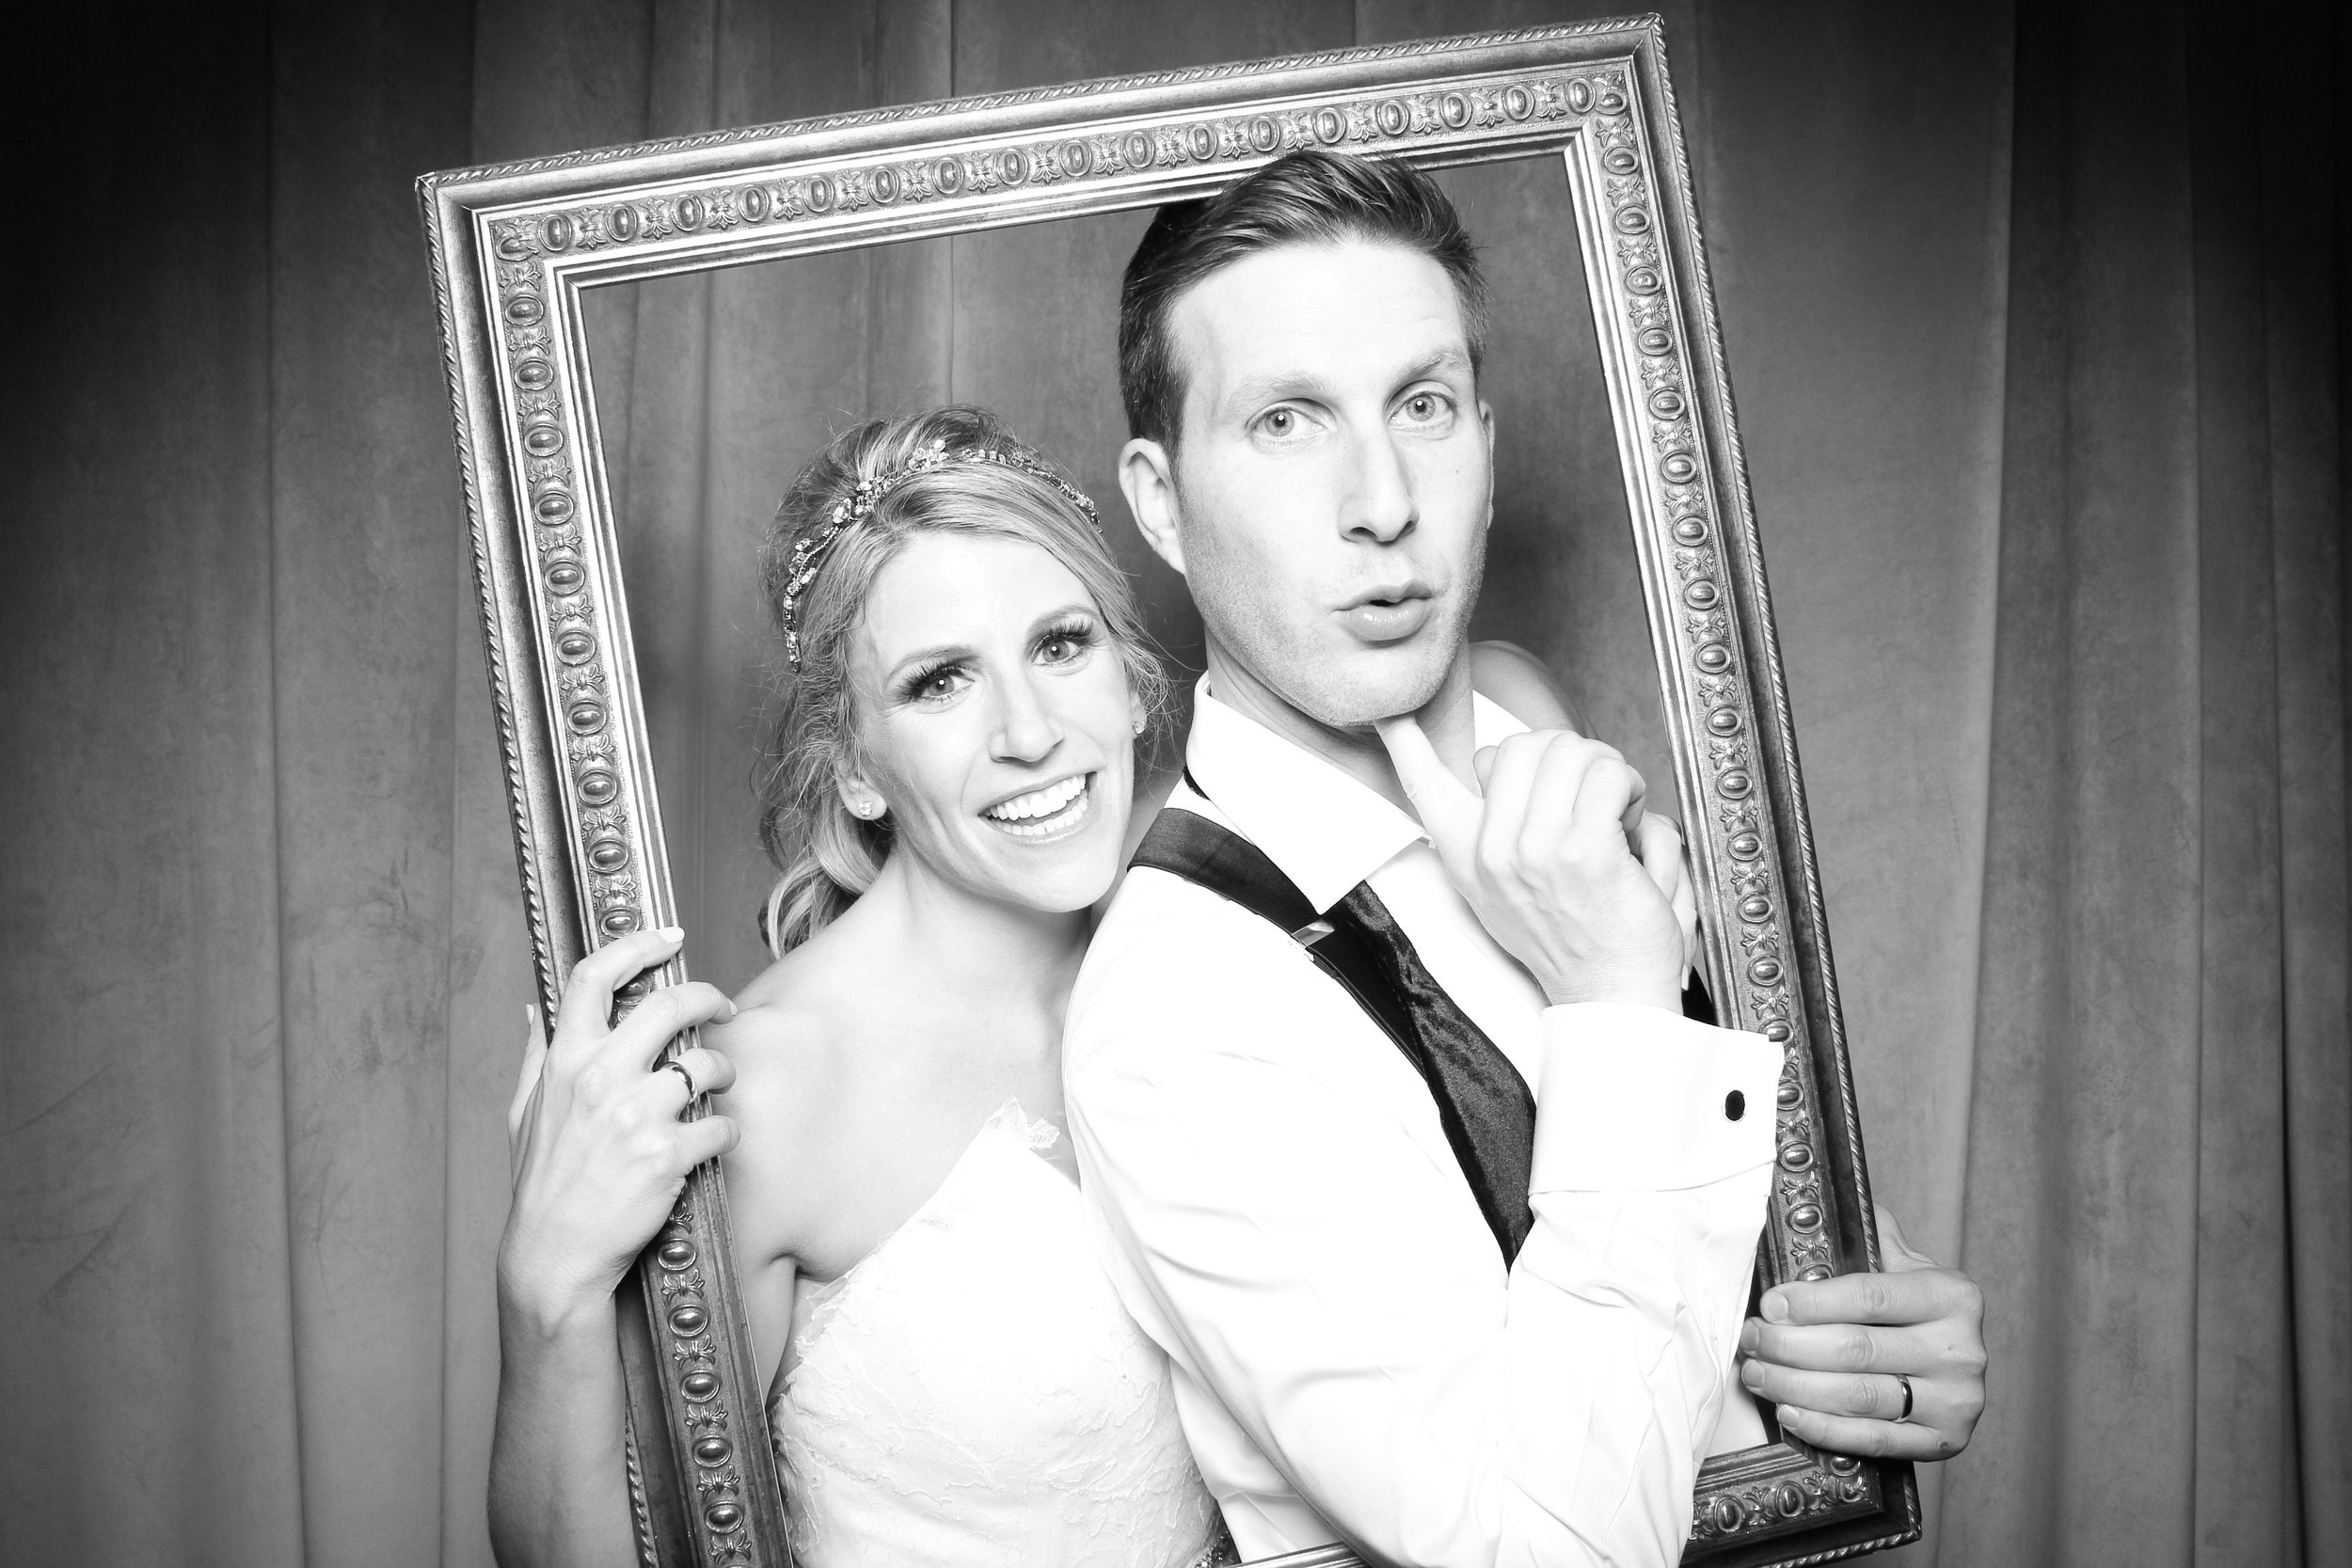 Chicago_Vintage_Wedding_Photobooth_Four_Seasons_28.jpg